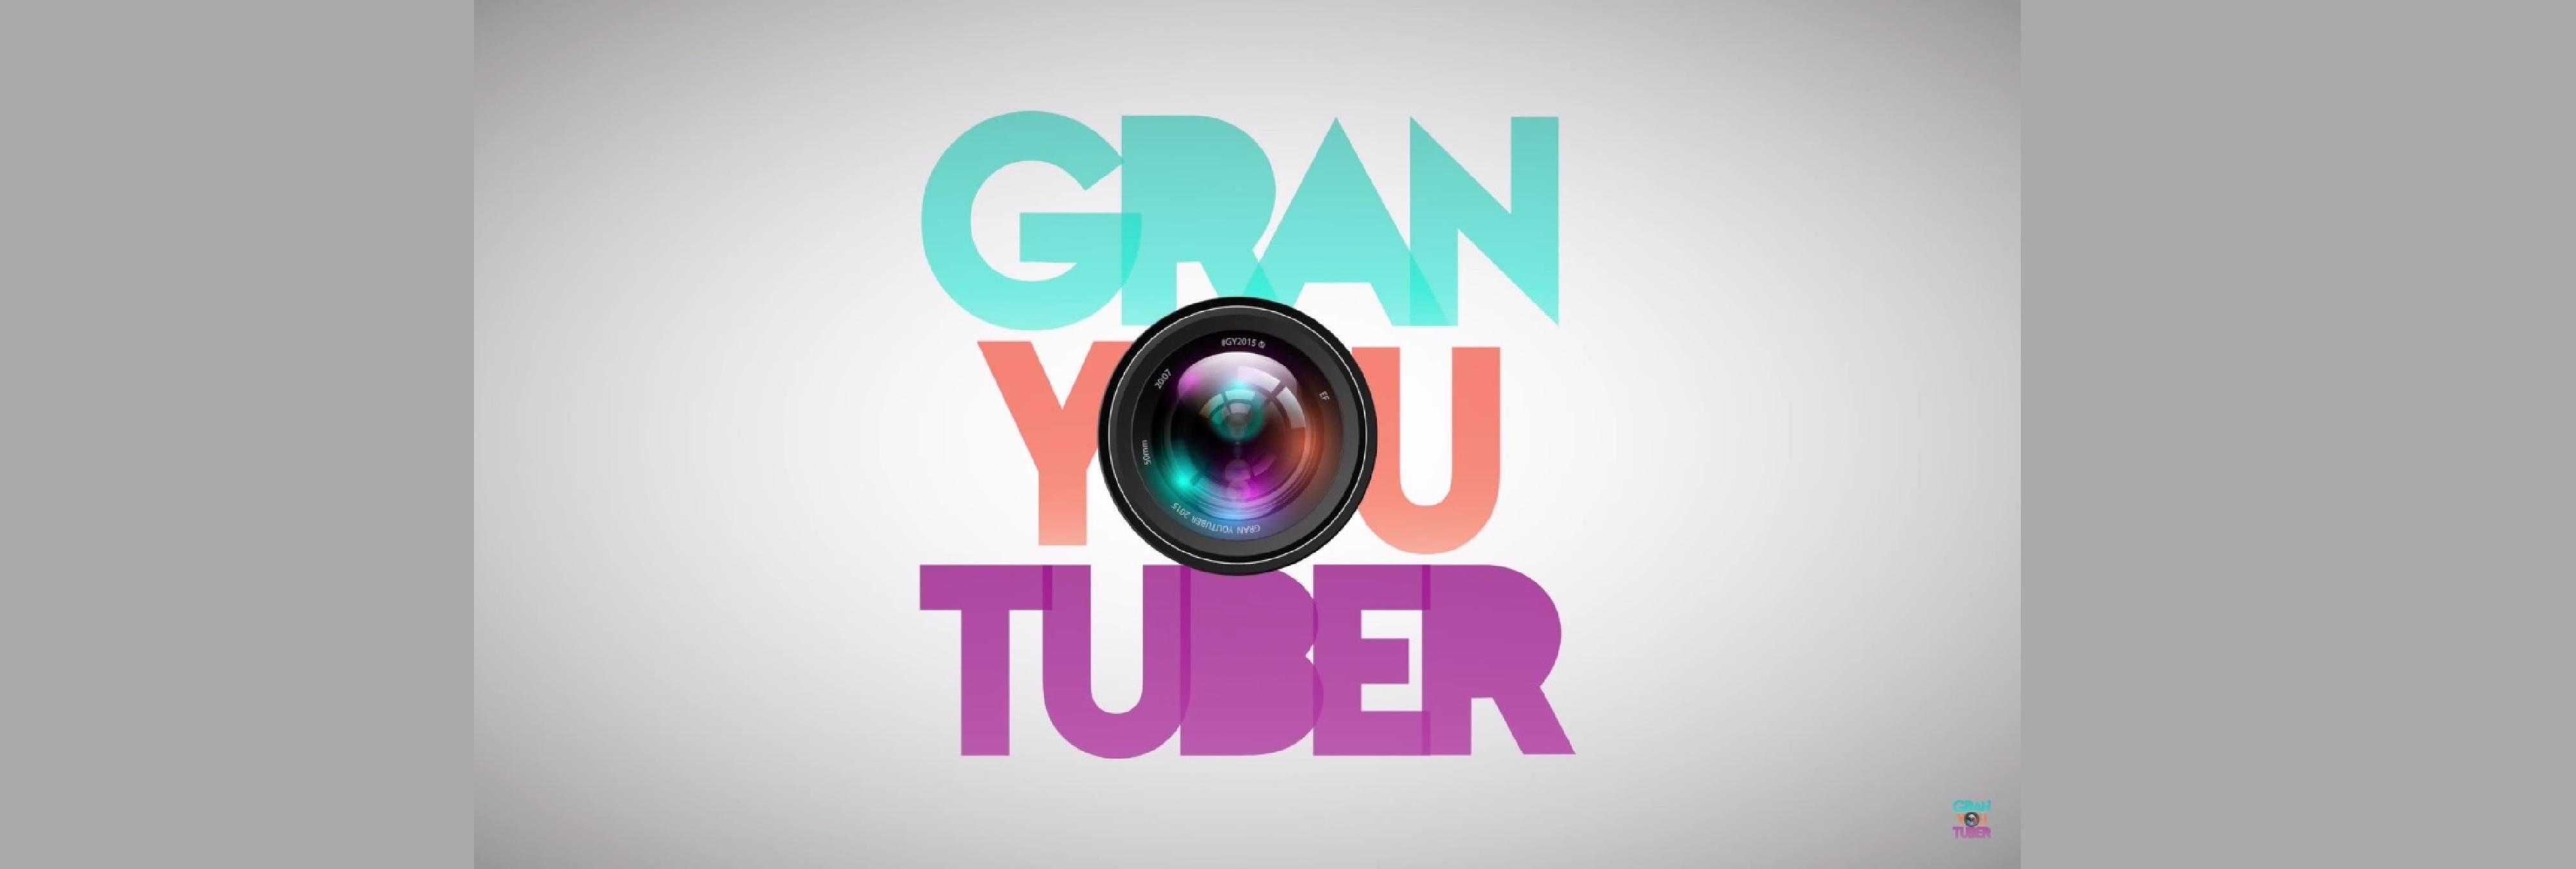 'Gran Youtuber': el 'Gran Hermano' de YouTube